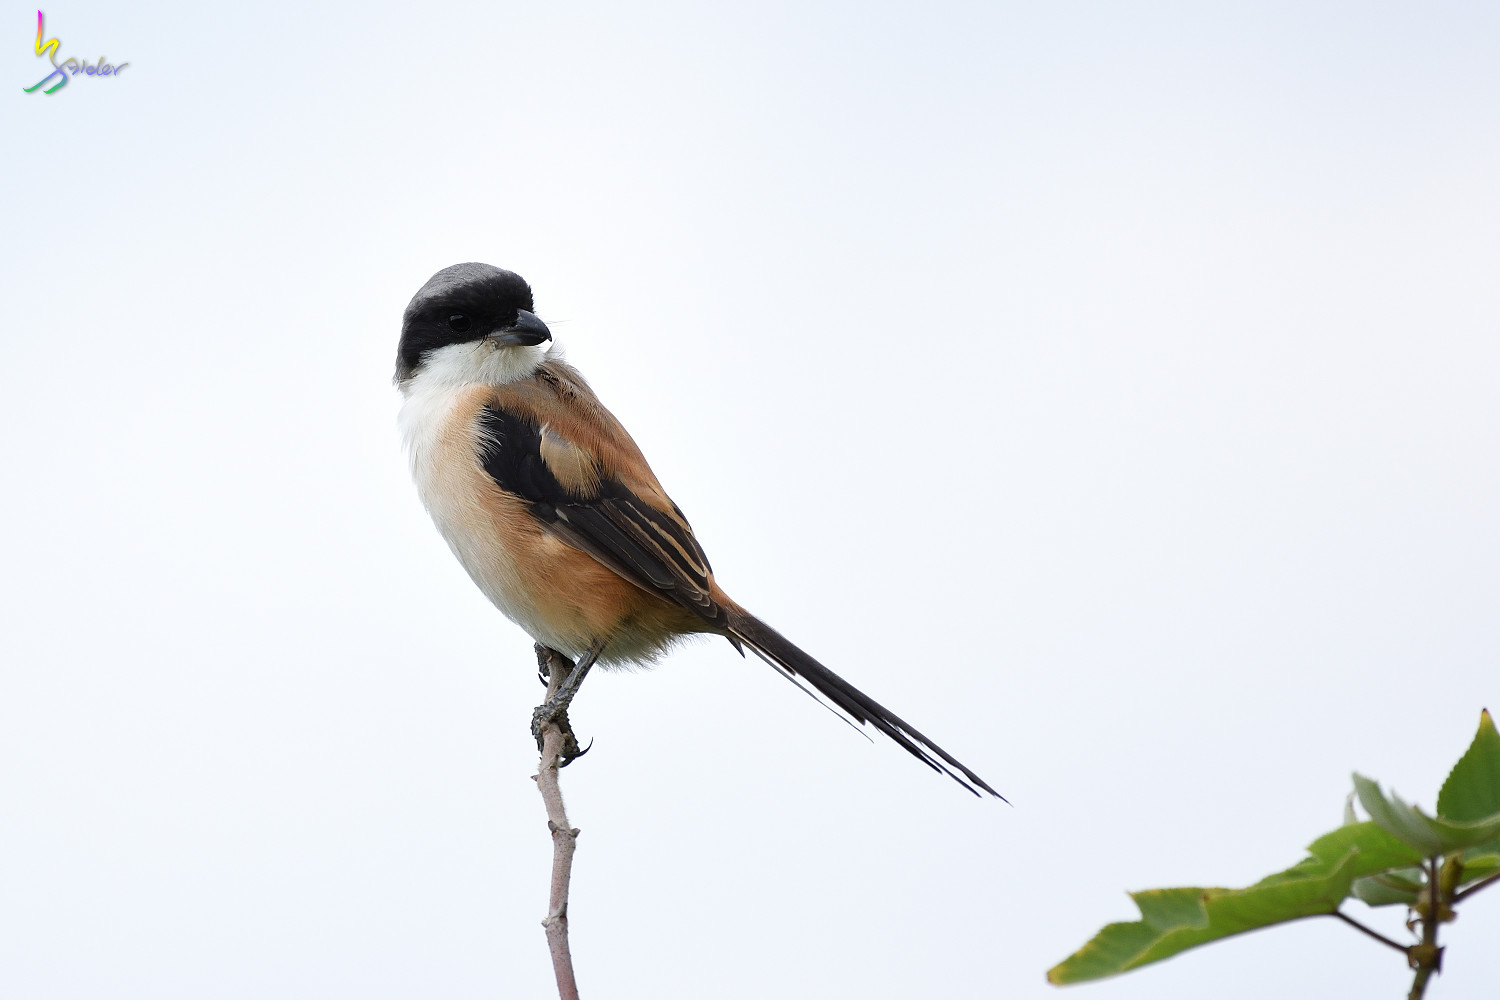 Long-tailed_Shrike_0695